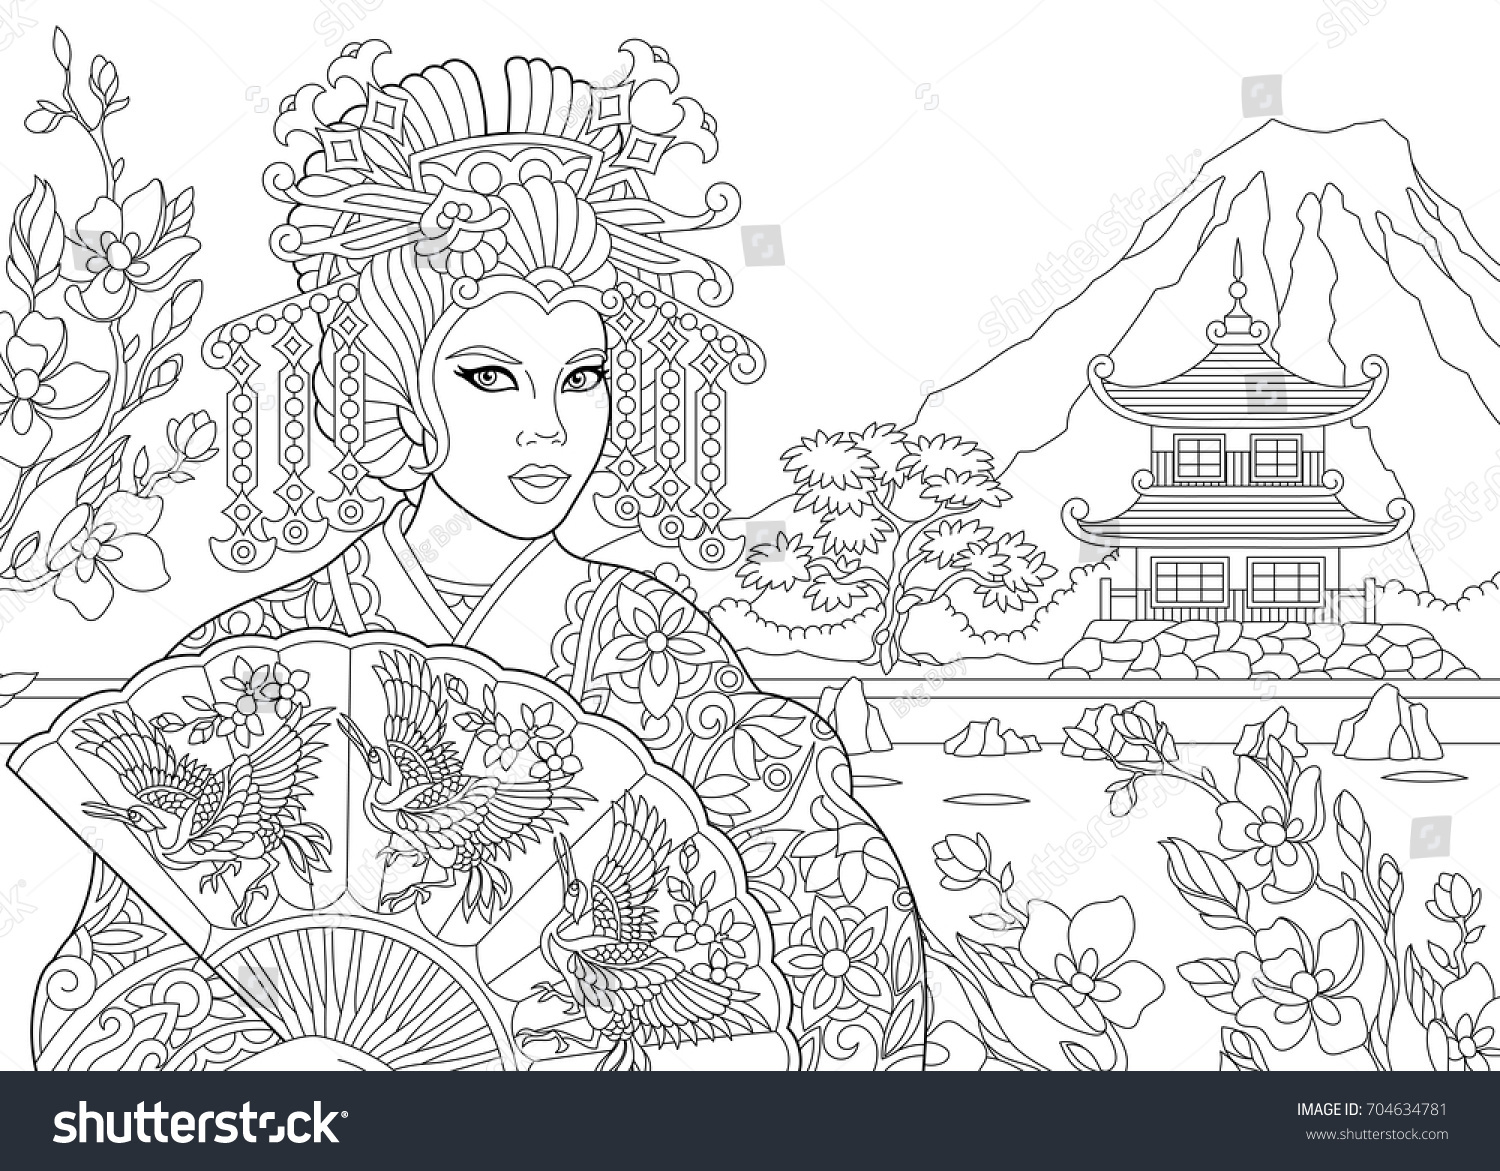 Big Abstract Coloring Pages : Coloring page geisha japanese dancing actress stock vector